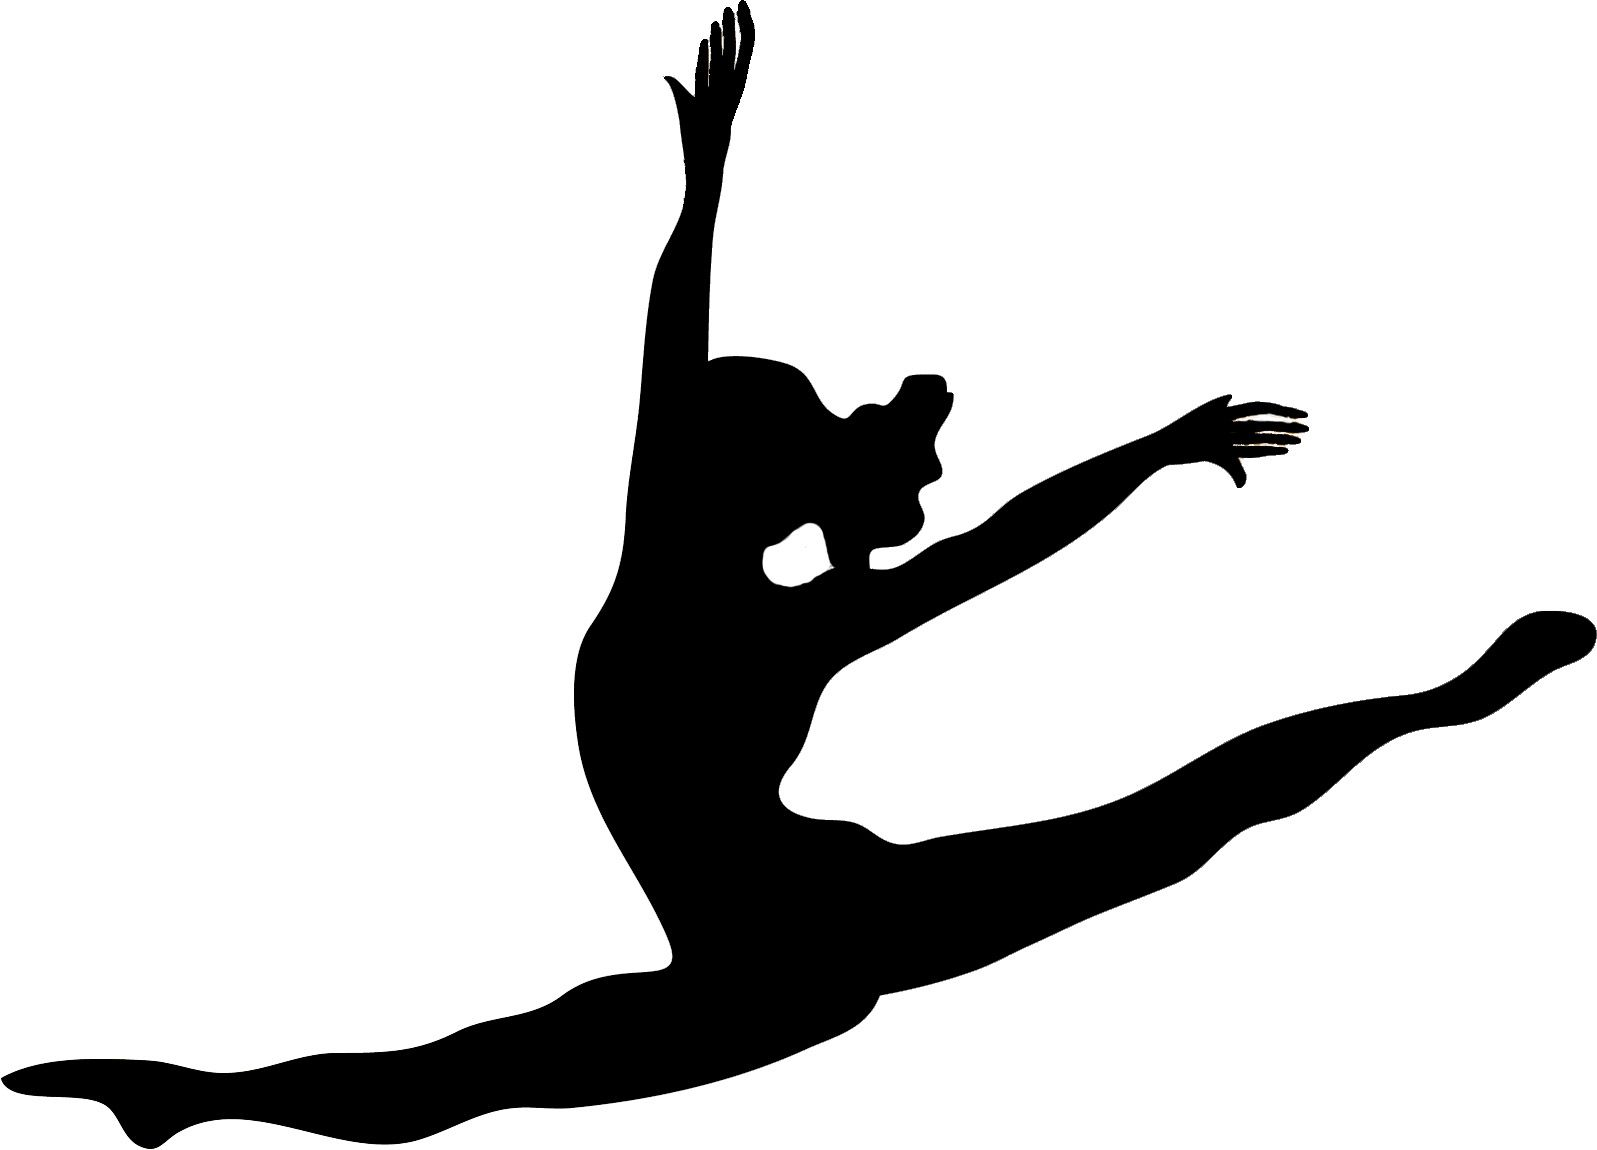 Line Drawing Leap Years And Euclid : Dance silhouettes vector get a silhouette of myself doing